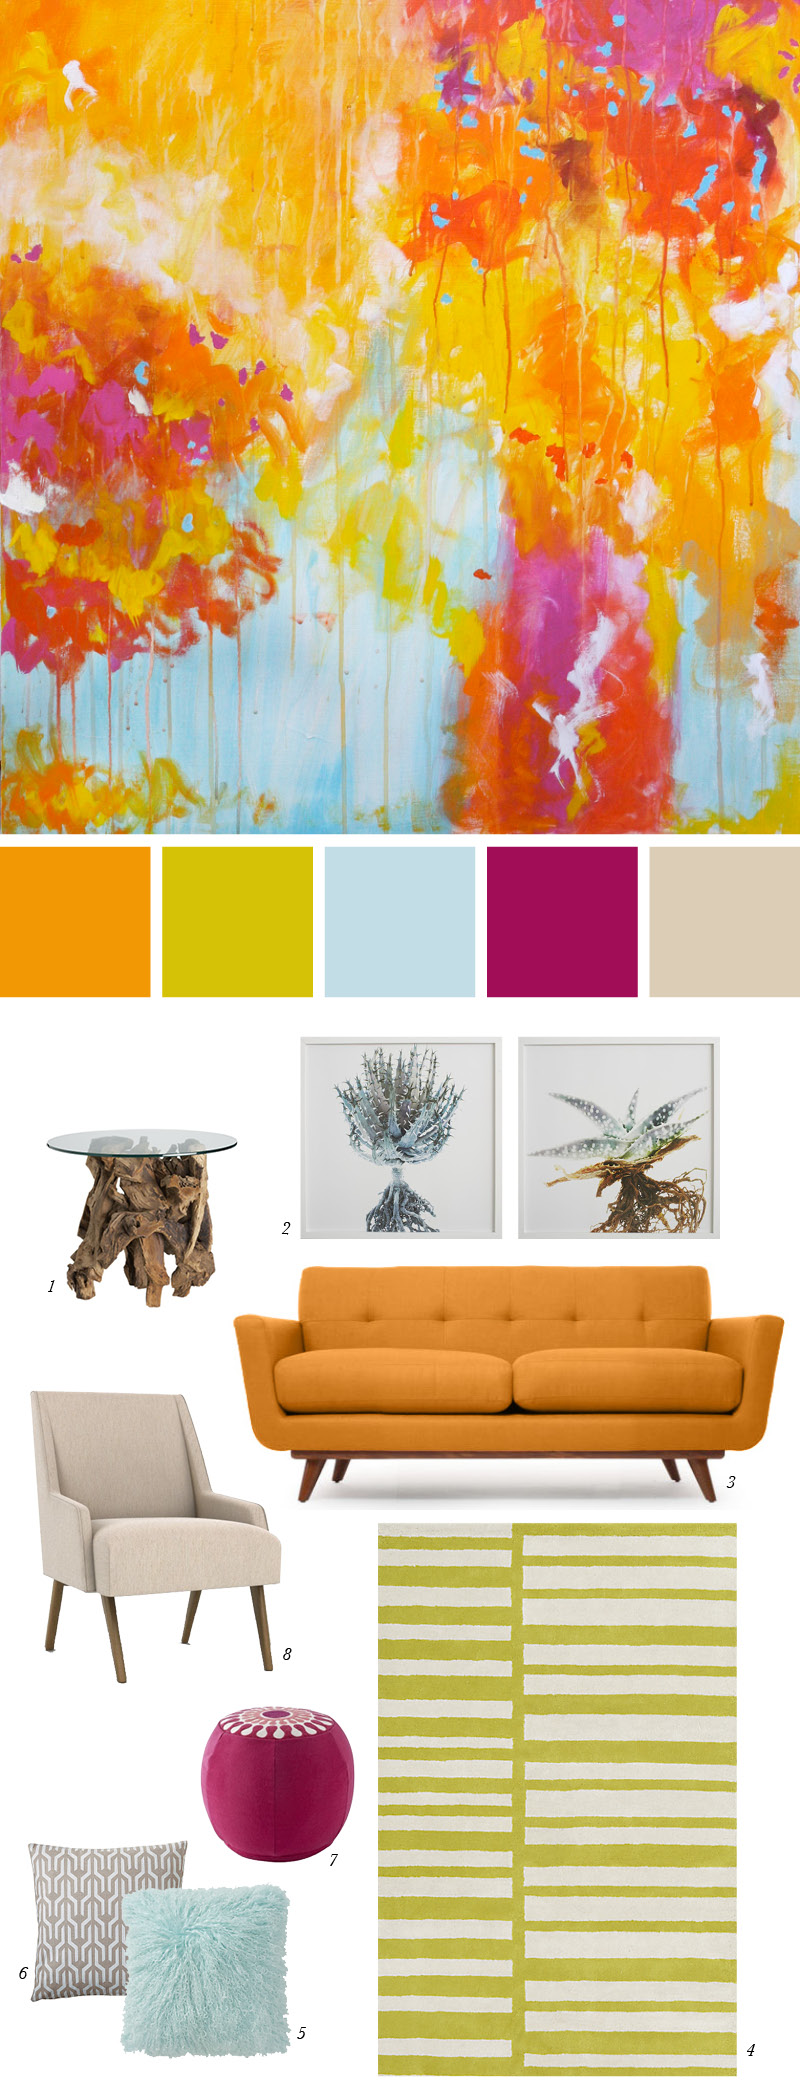 Inspiration Image: Confetti by Christine Soccio 1. Driftwood Side Table from Crate & Barrel 2. Clinton Fredman Wall Art from West Elm 3. Nixon Loveseat from Thrive Home Furnishings 4. Keys Rug from CB2 5. Luxe Fur Pillow from Anthropologie 6. Bark Kuba Pillow Cover from Serena & Lily 7. Katie Round Pouf from Happy Chic by Jonathan Adler at JC Penny's 8. Pollino Chair from Dwell Studio